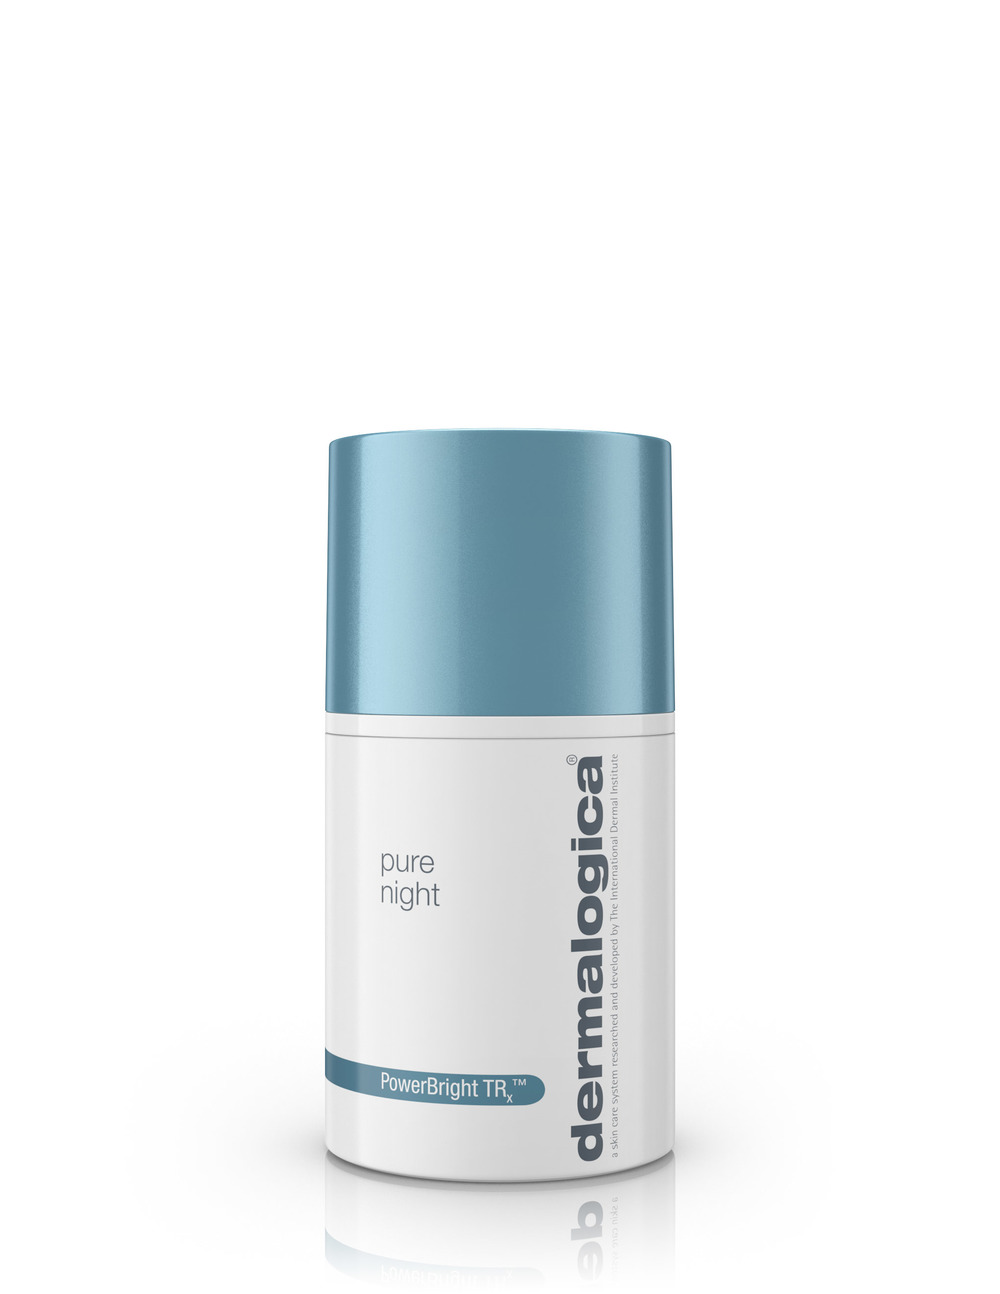 pure night  Restore skin luminosity and maximize PowerBright TRx™ results with this rich, nighttime moisturizer. It helps reduce the appearance of brown spots and uneven skin tone while you sleep with an active blend of skin-brightening agents. Oligopeptide, brightening Vitamin C, Niacinamide and Zinc Glycinate help control melanin (pigment) formation and hyperpigmentation, while Pumpkin enzyme smooths the skin. Cranberry and Raspberry Seed oils help restore critical barrier lipids, optimizing skin hydration and reducing the appearance of fine dehydration lines. White Bird of Paradise Seed Extract helps increase skin luminosity while collagen-stimulating Vitamin C and Moth Bean Seed Extract fight signs of aging. Formulated without artificial fragrances, colors or parabens.